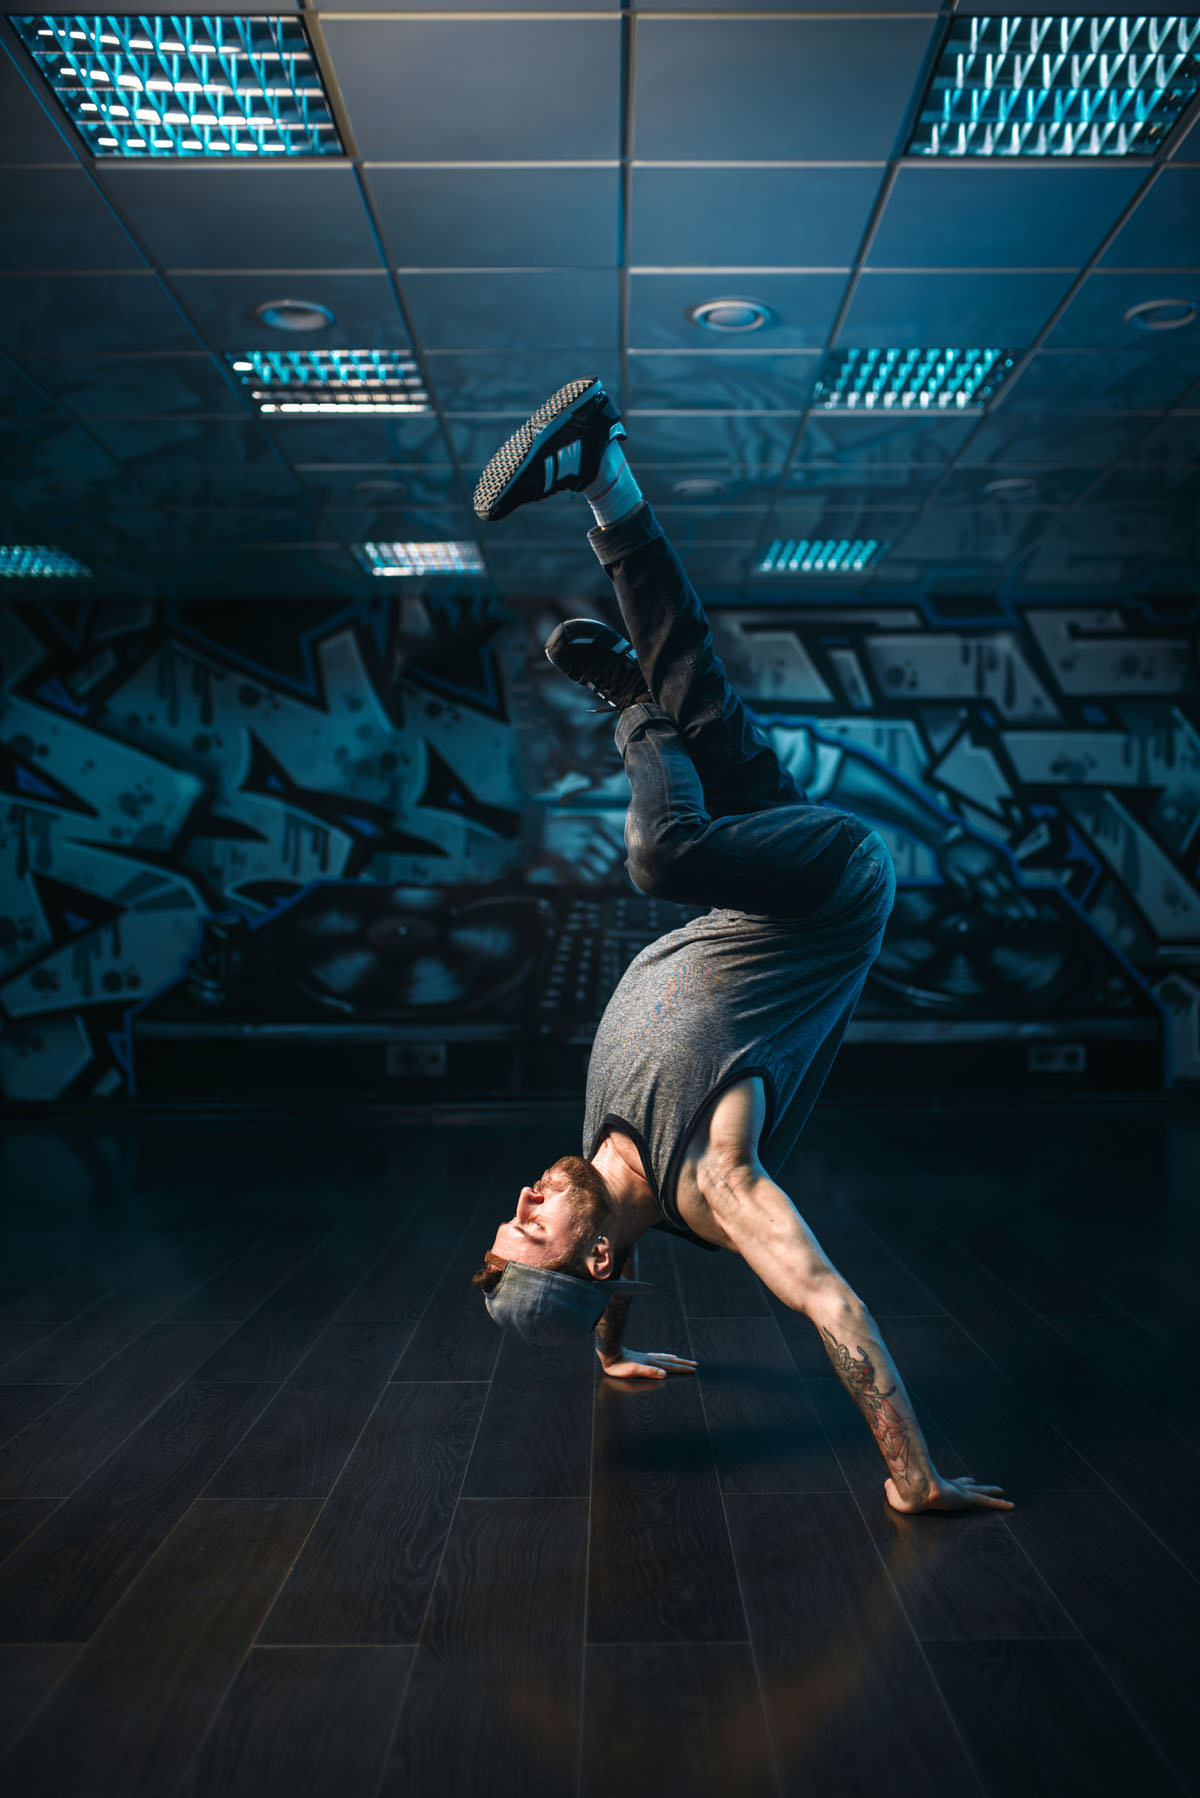 Hip hop motions, male performer in dance studio. Modern urban dancing style